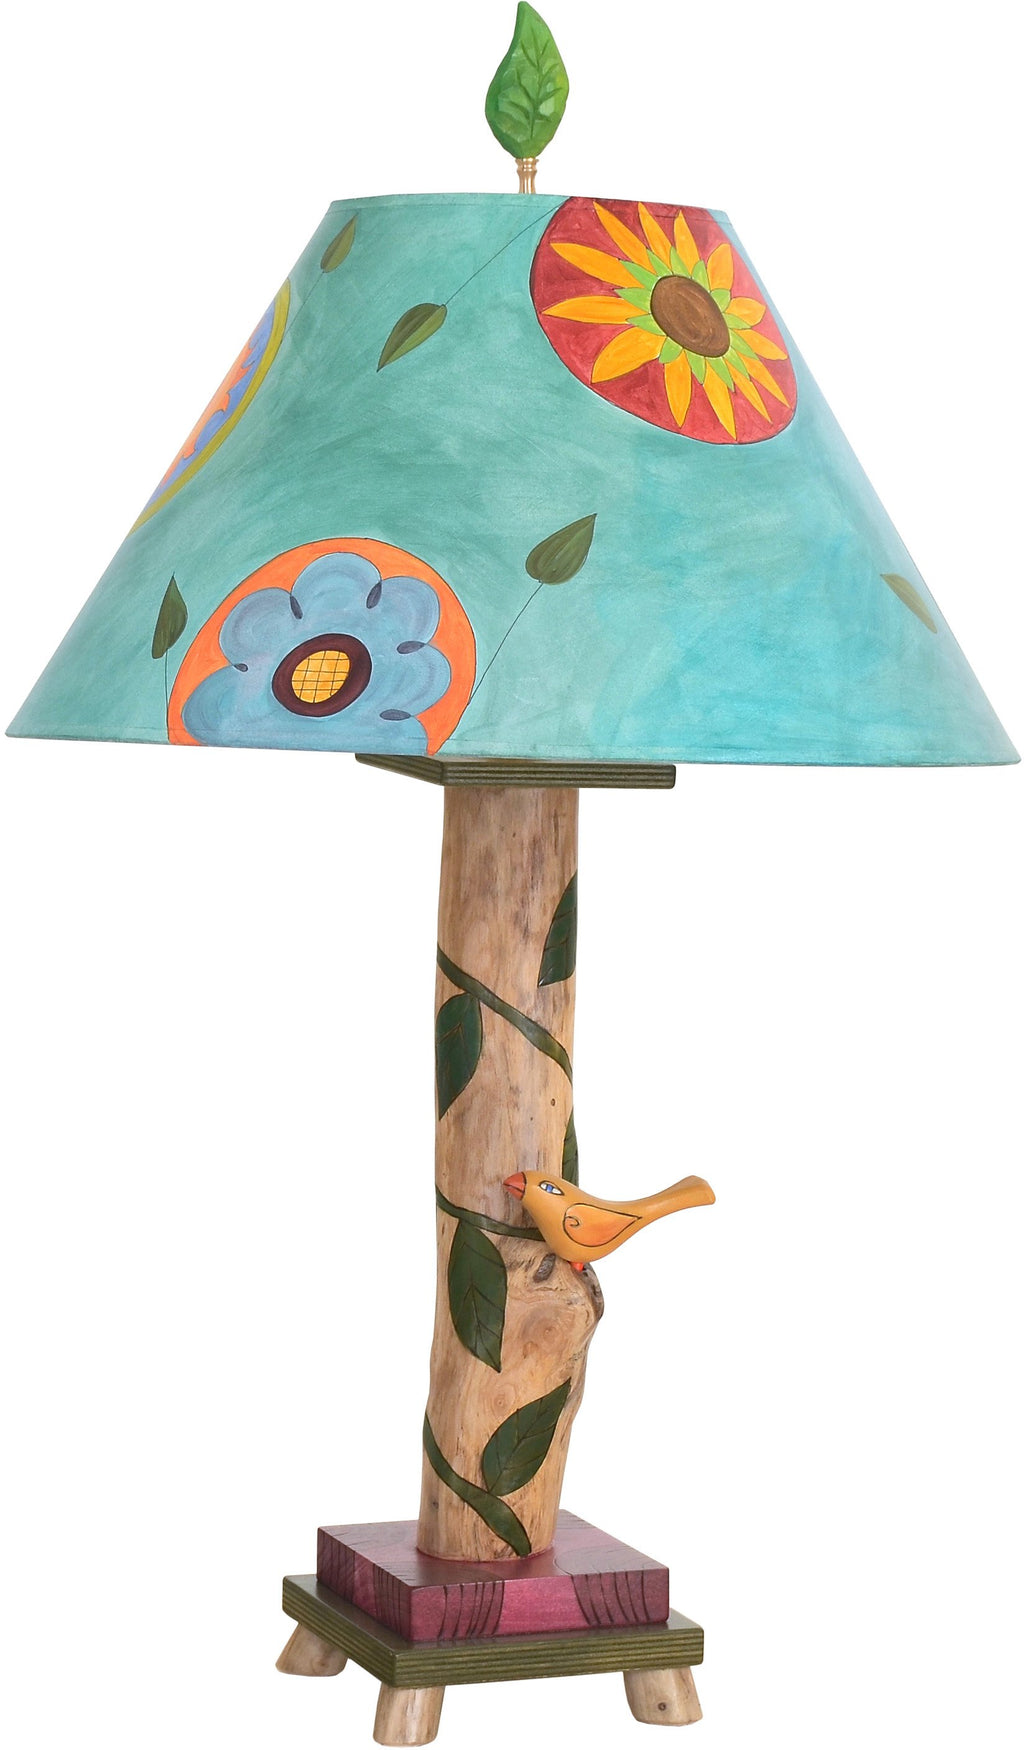 Log Table Lamp –  Beautiful little table lamp with floral and vine motifs